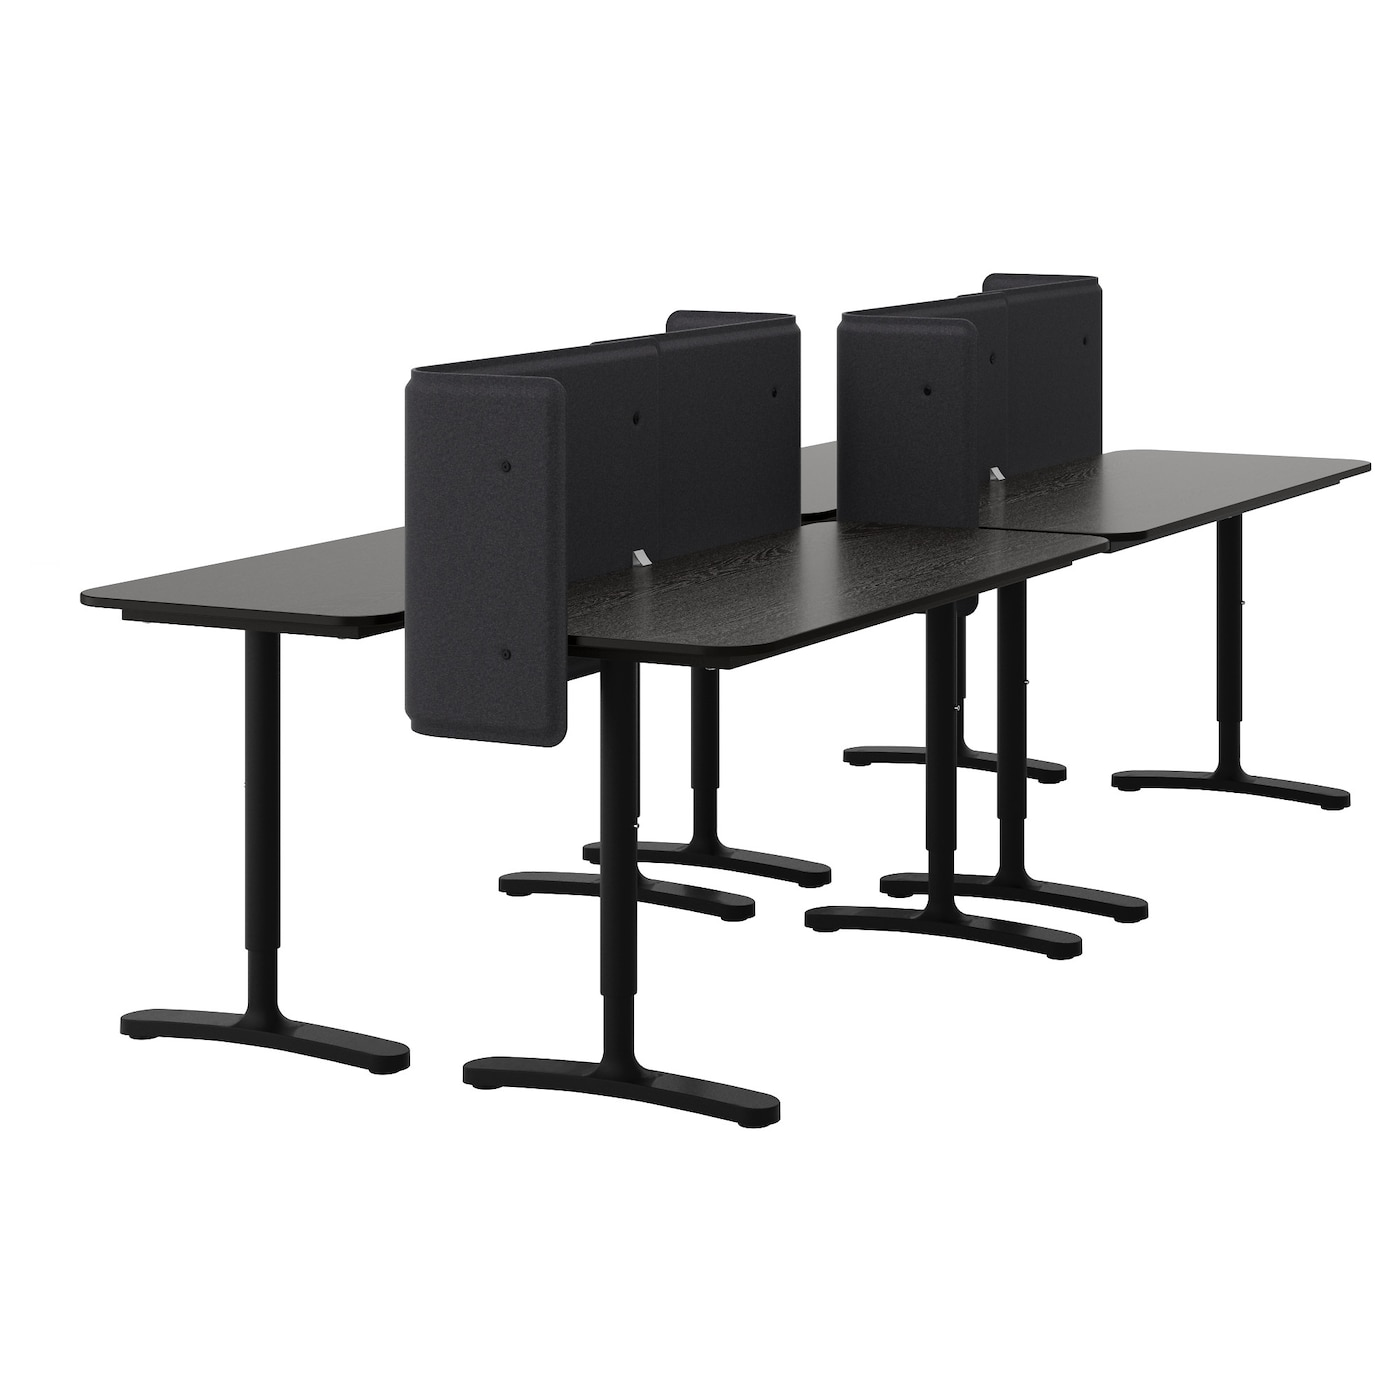 IKEA Office Desks Standing Desks Ireland Dublin